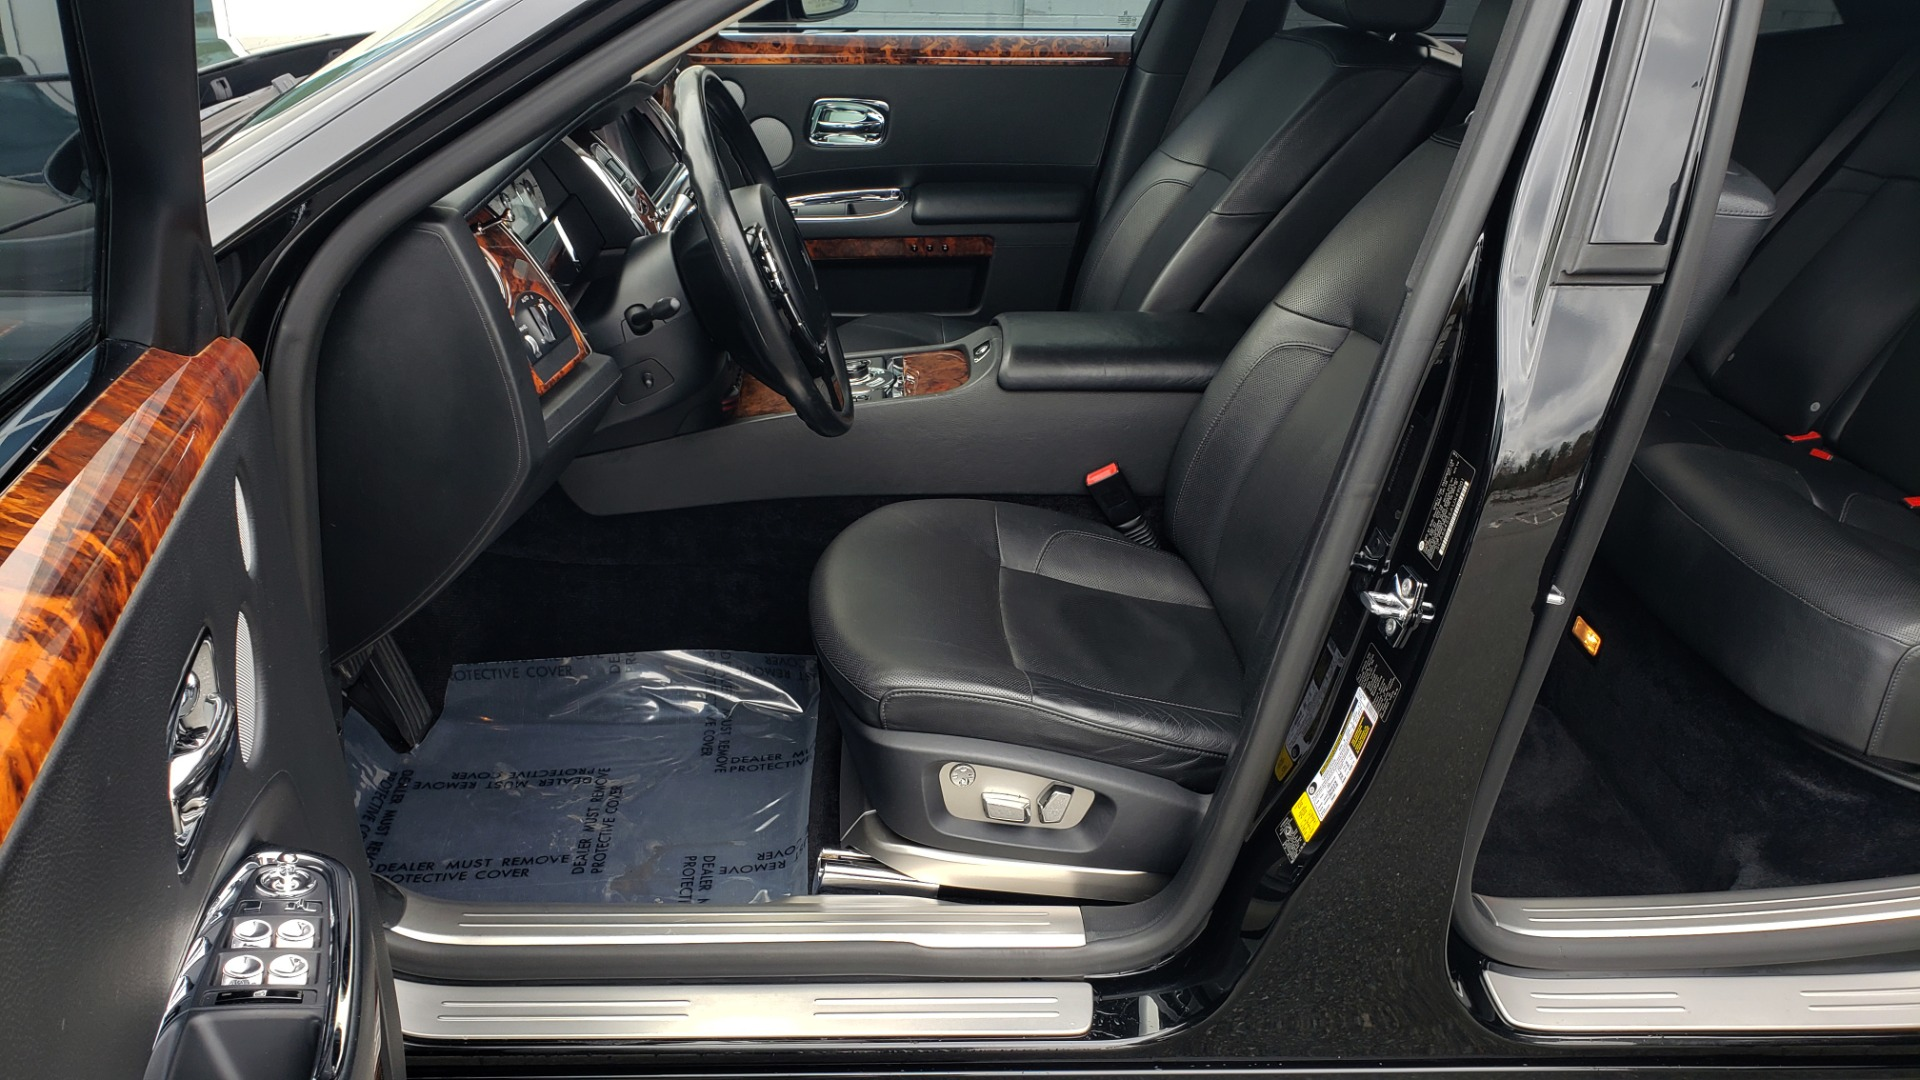 Used 2010 Rolls-Royce GHOST 6.6L TURBO V12 (563HP) / NAV / SUNROOF / SUICIDE DOORS for sale $89,000 at Formula Imports in Charlotte NC 28227 19